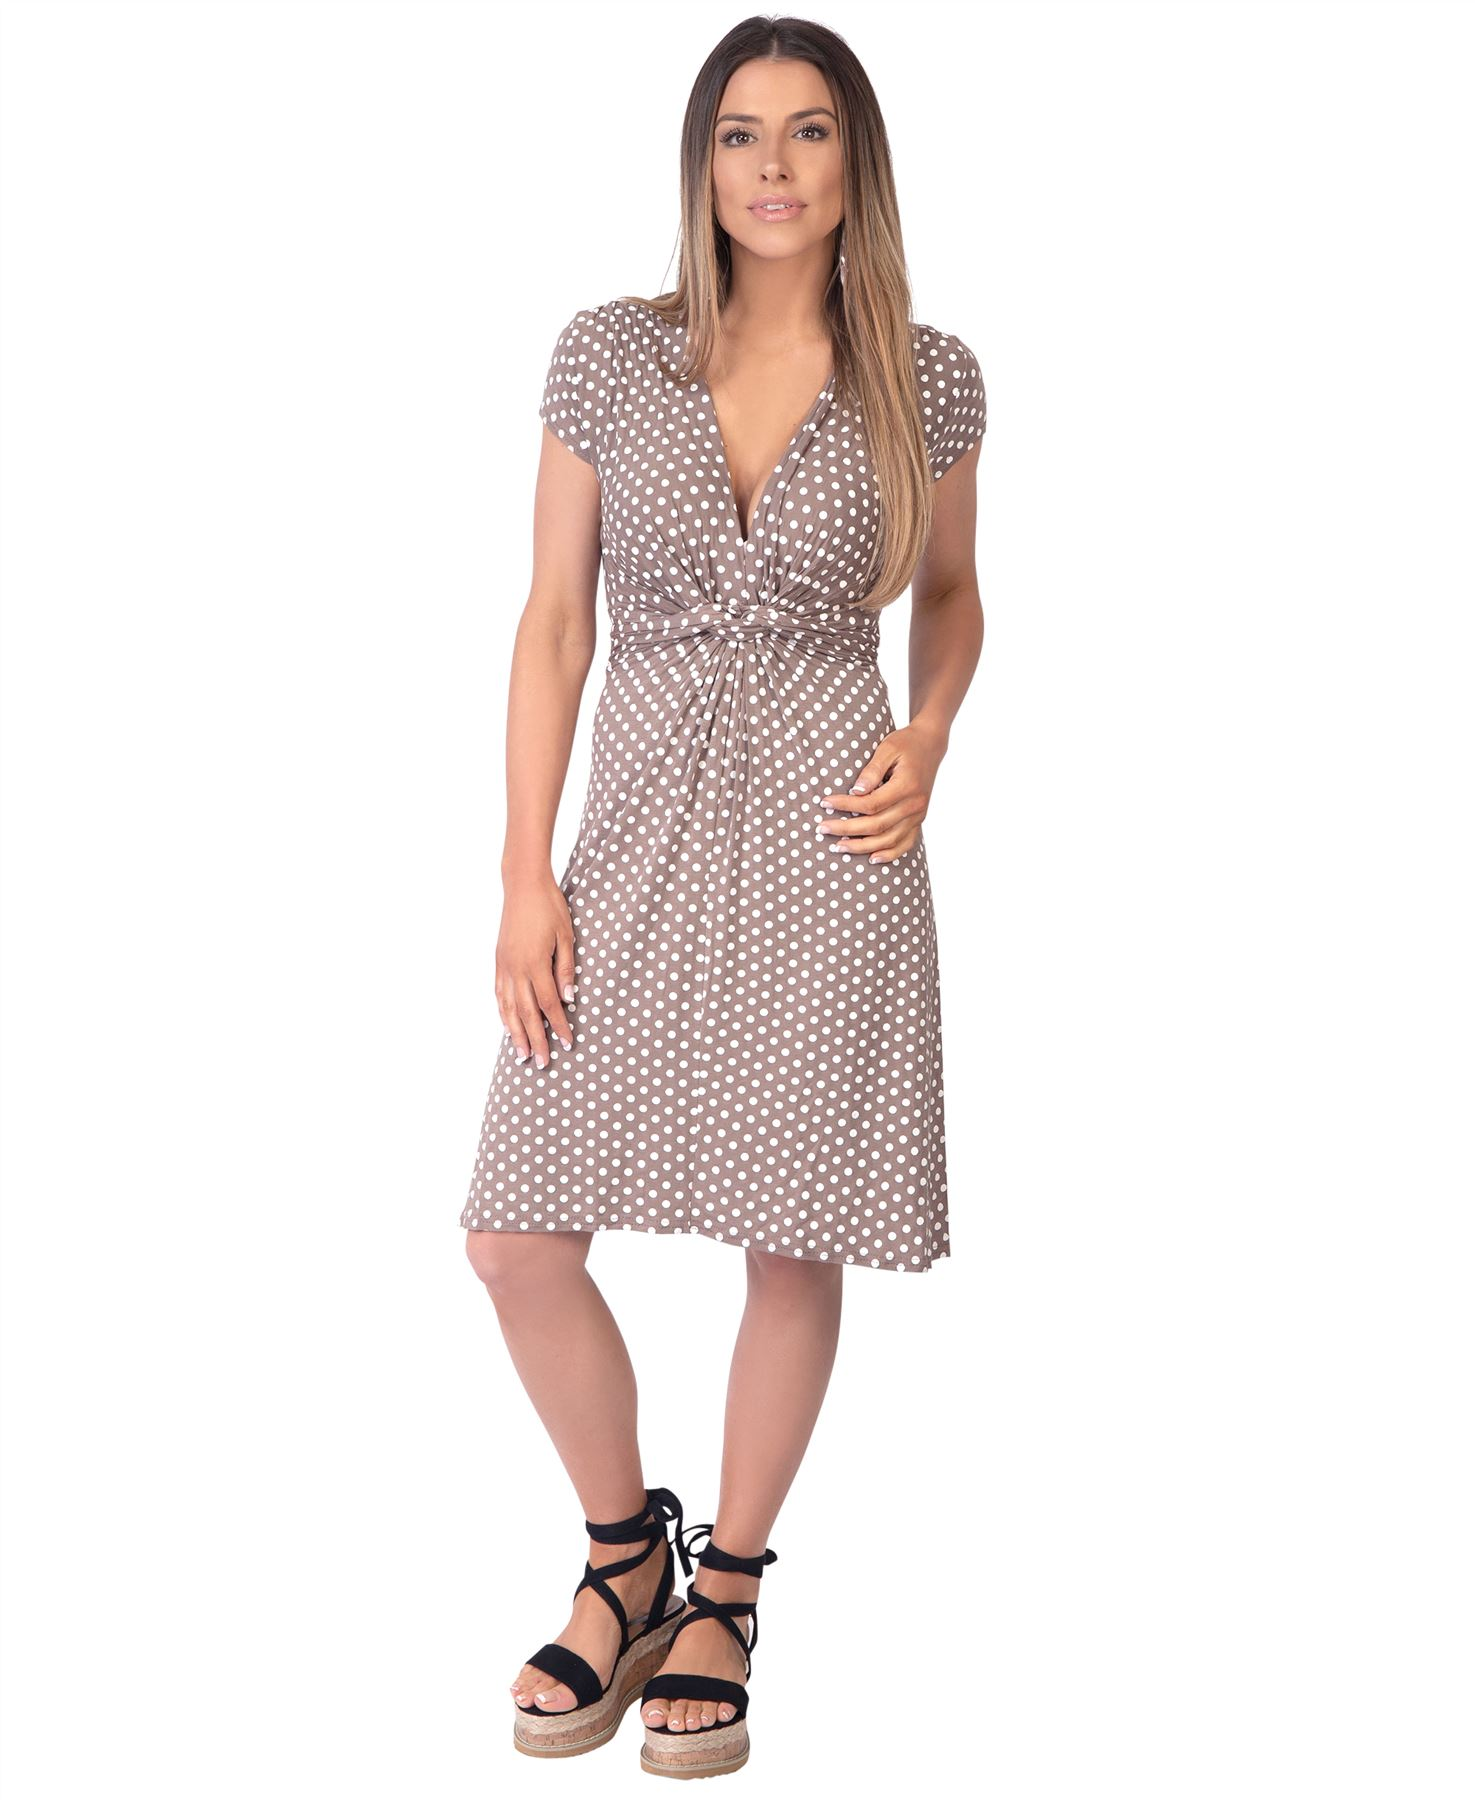 Womens-Polka-Dot-Dress-Pleated-Skirt-Wrap-Front-Mini-V-Neck-Top-Swing thumbnail 21